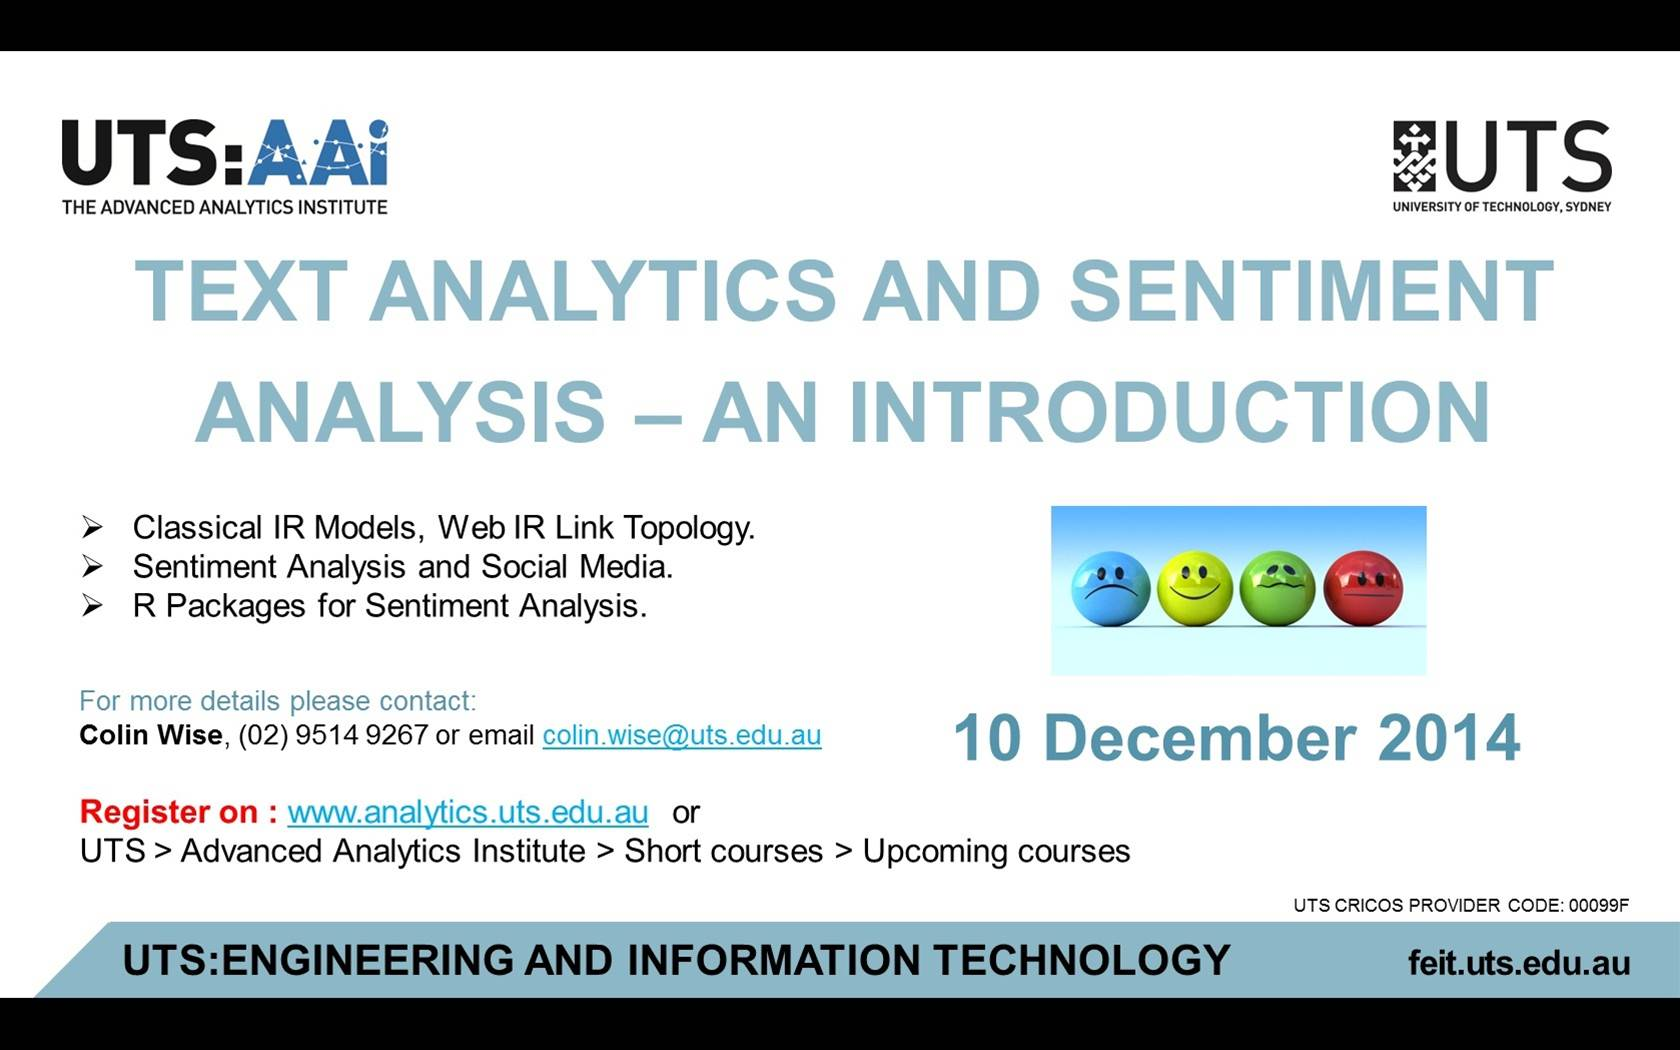 Text Analytics and Sentiment Analysis - an Introduction